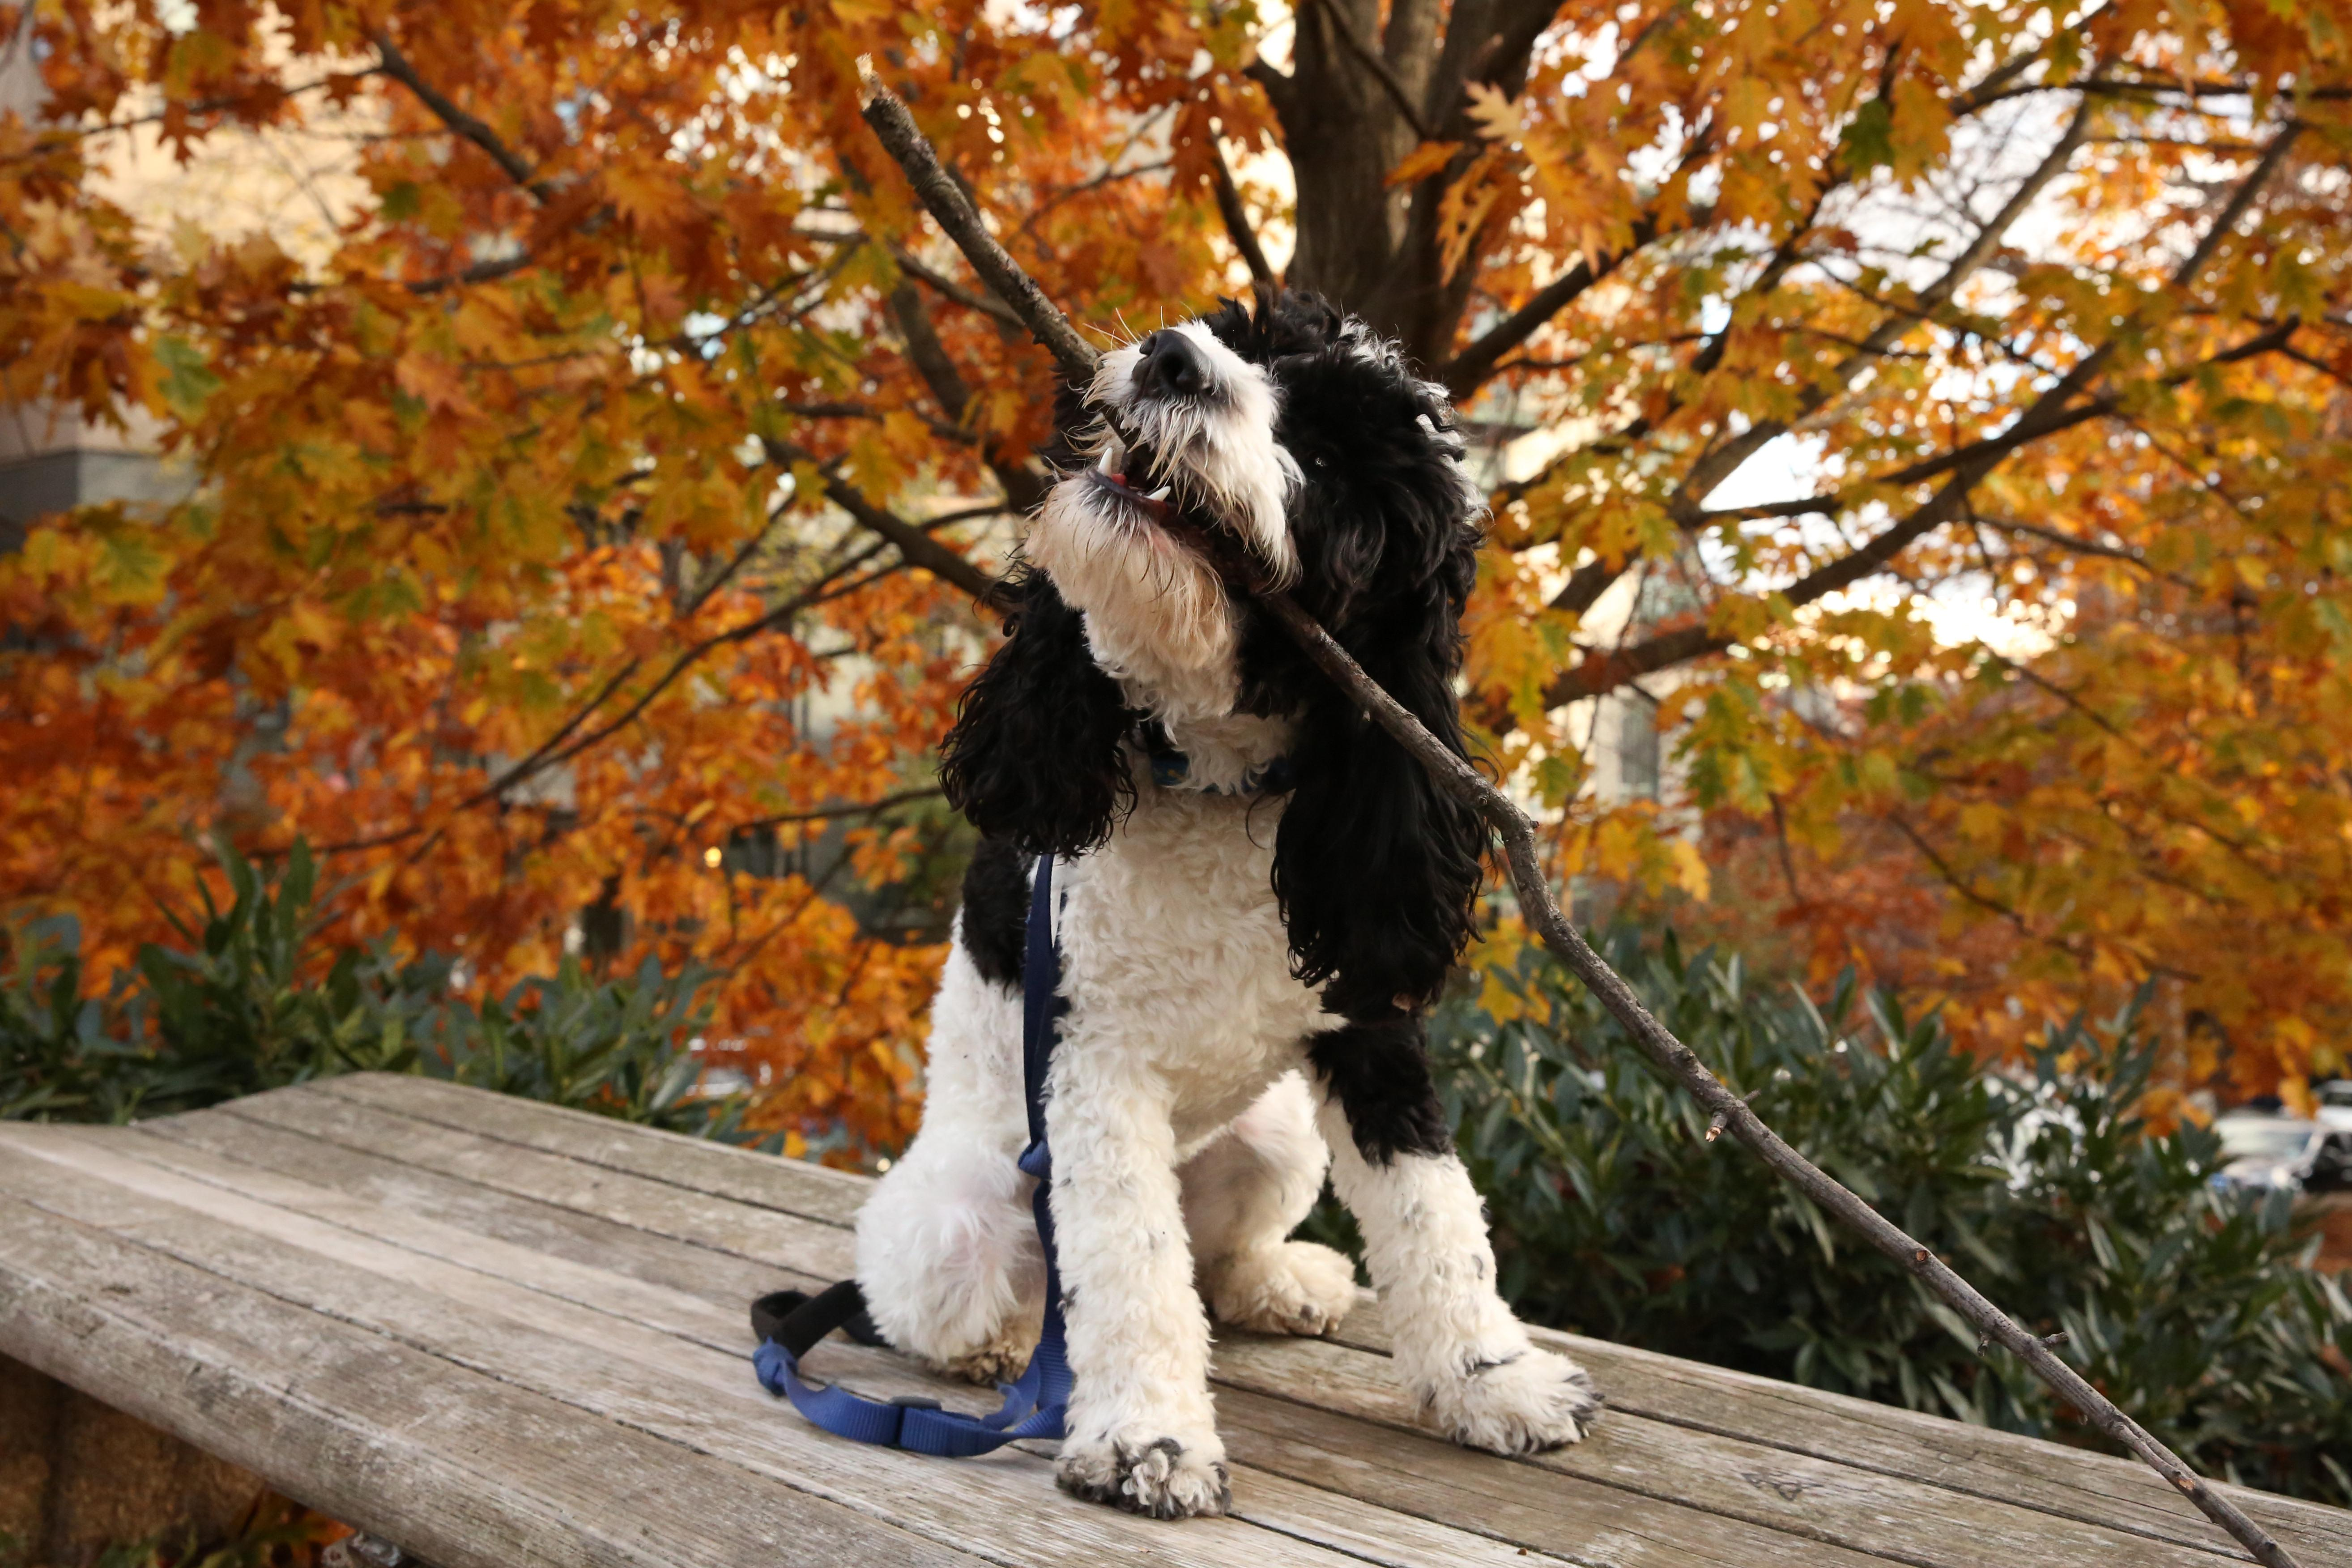 Maybe it's just wishful thinking on our part, but we're hoping fall is just around the corner. Here are some of our favorite dogs from years past that love autumn just as much as we do! If you're interested in having your pup featured, drop us a line at aandrade@dcrefined.com (Amanda Andrade-Rhoades/DC Refined)